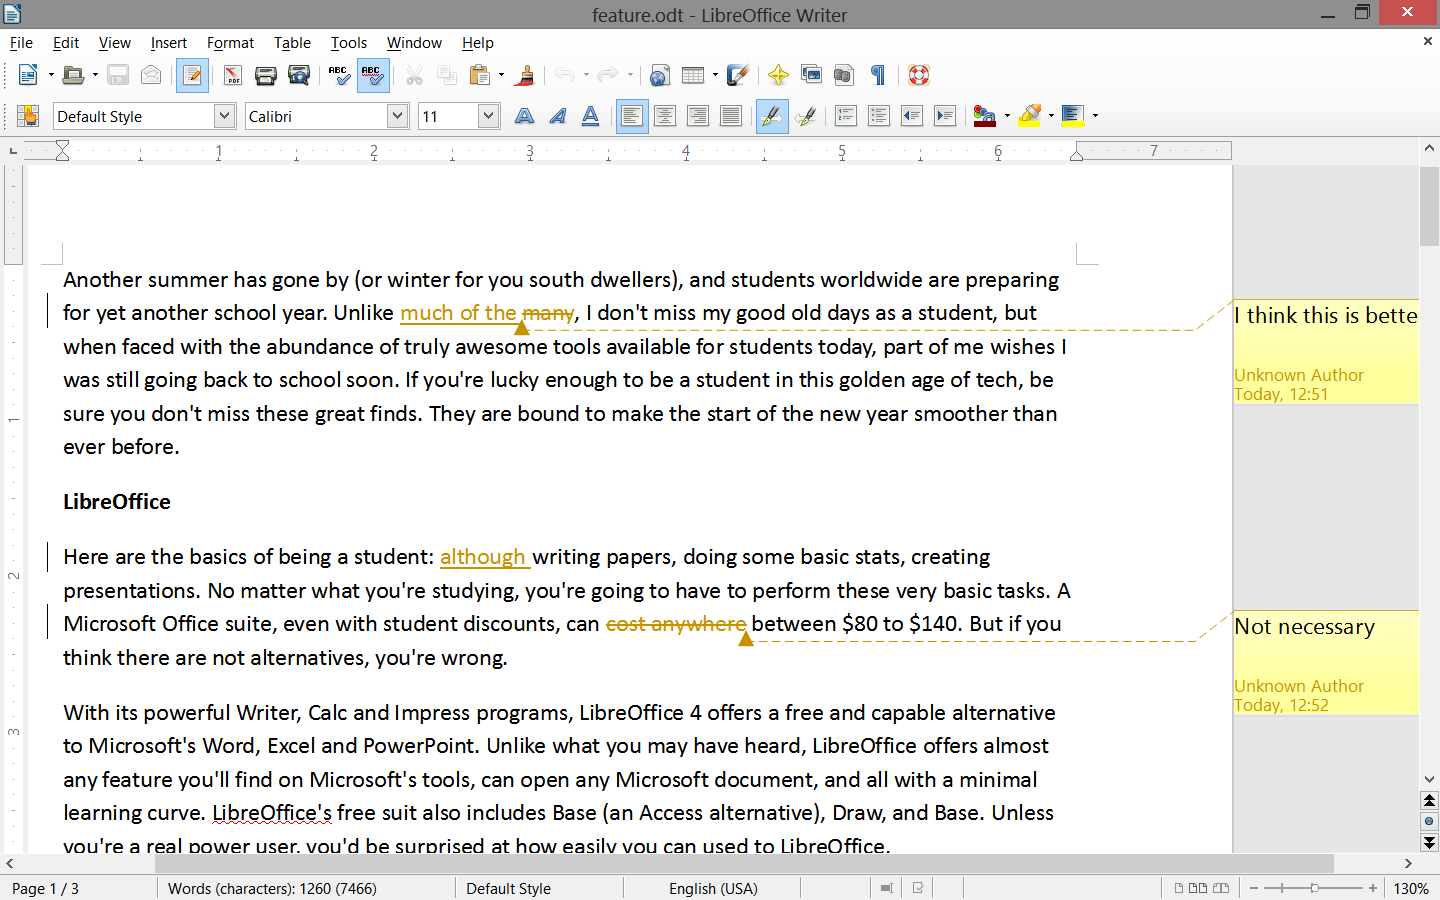 Is there any sort of software that is better than Microsoft office that helps with writing papers?